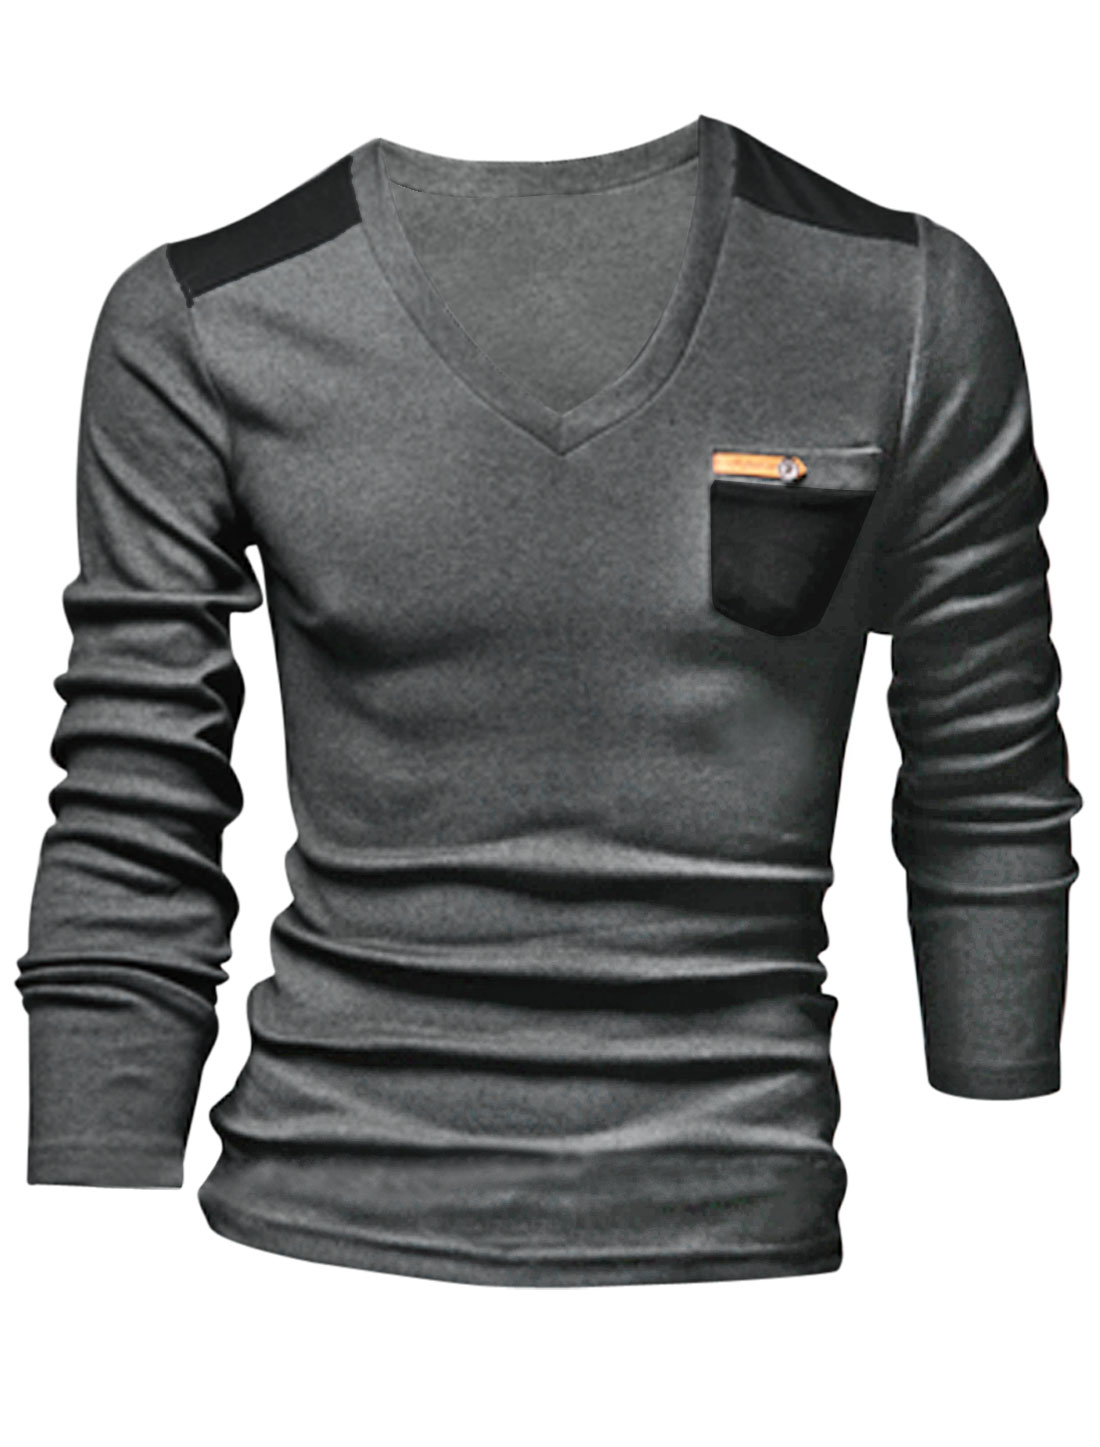 Men Cozy Fit One Chest Pocket Imitation Leather Decor Top Dark Gray M